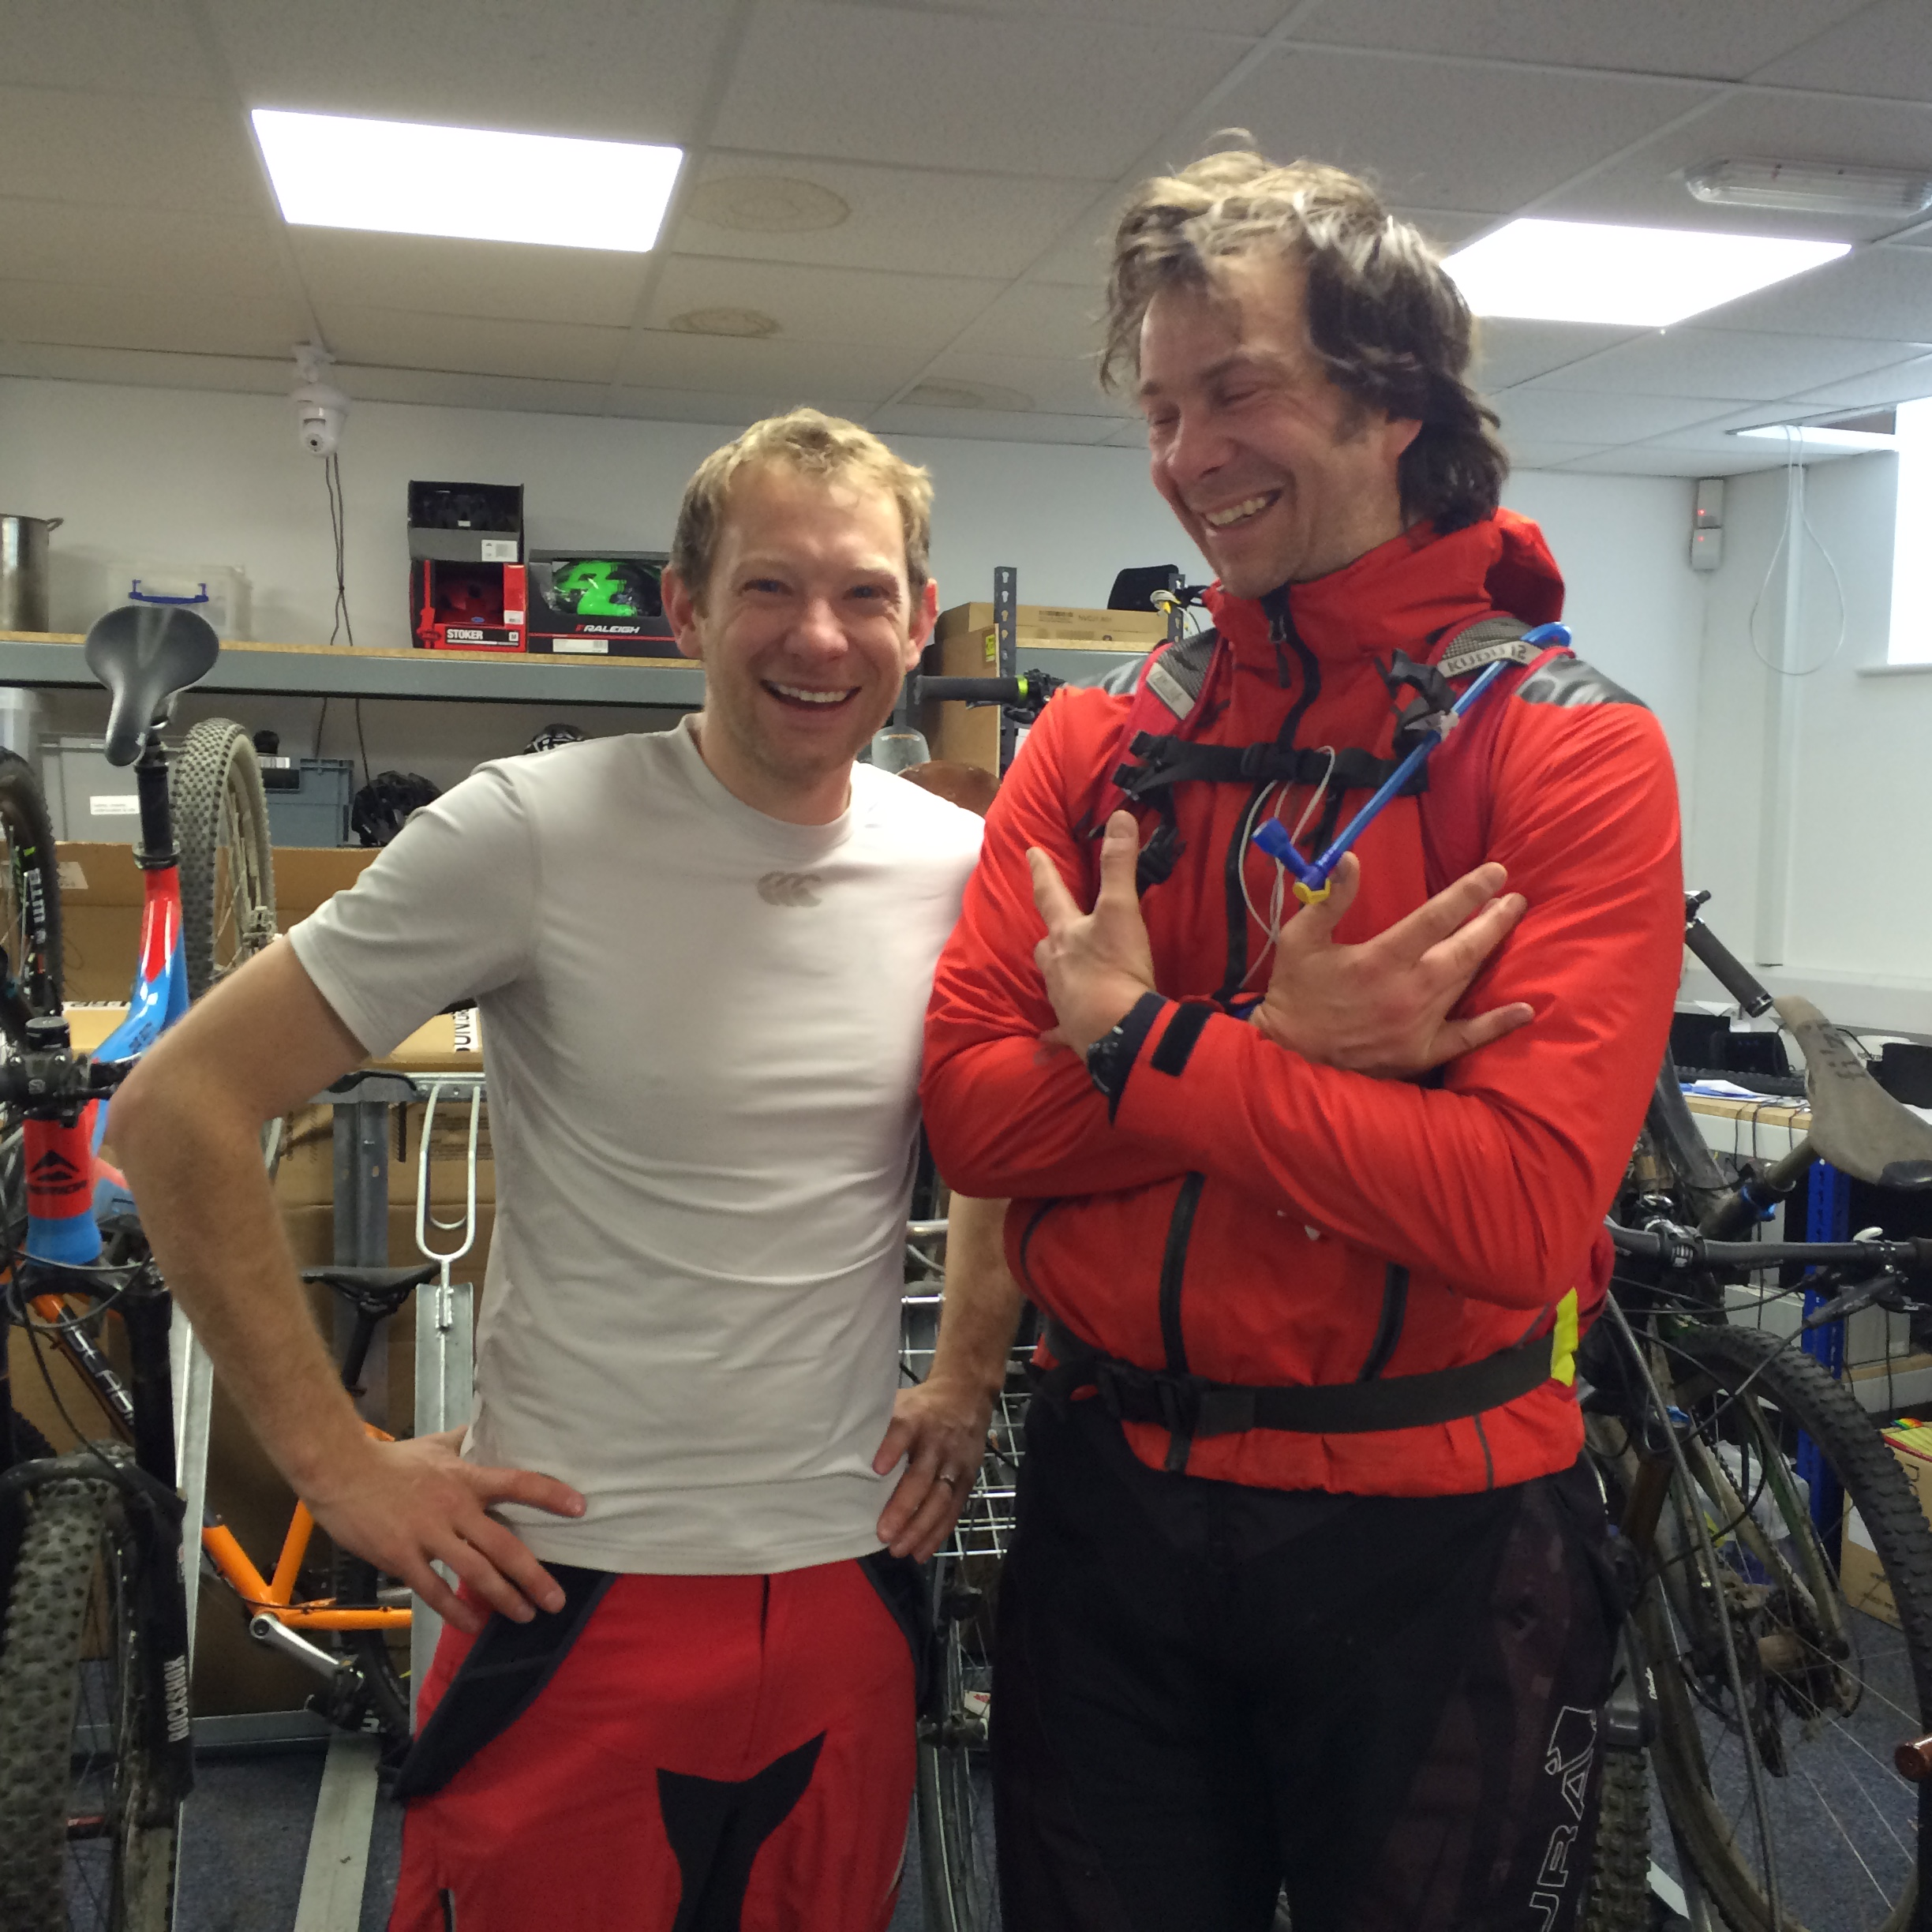 Two happy ride-to-workers at Grit HQ.